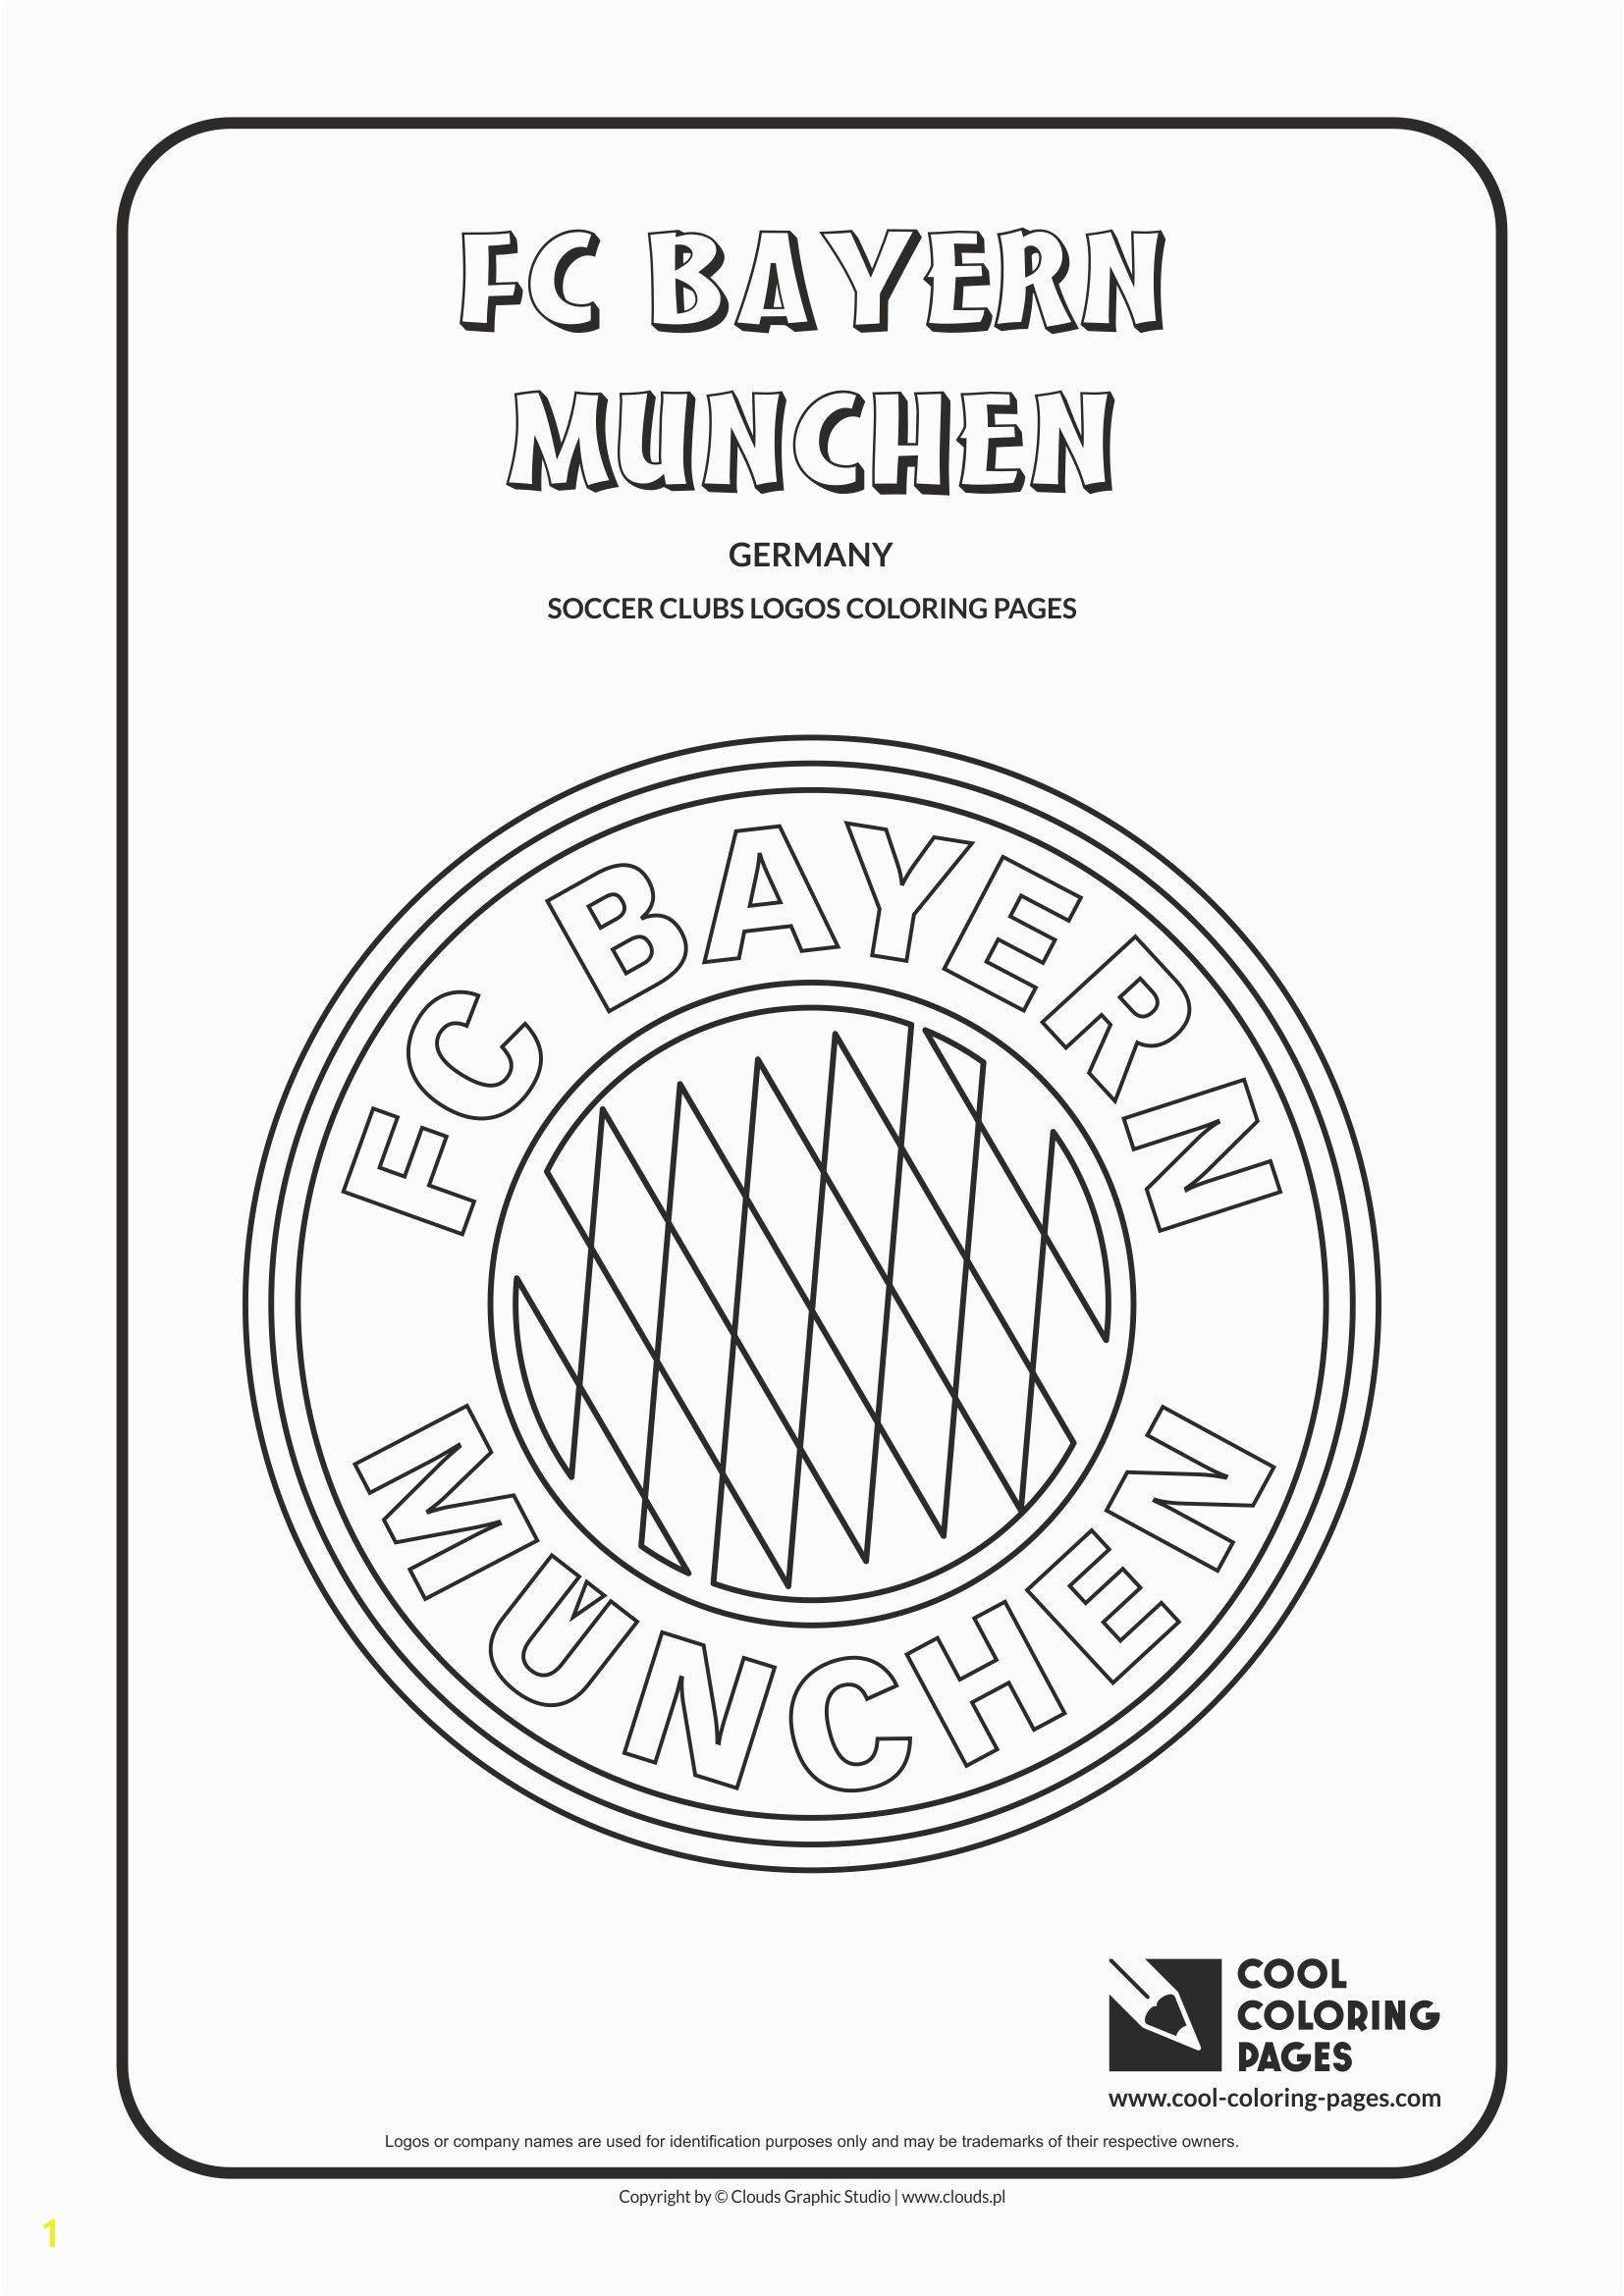 Cool Coloring Pages Soccer Club Logos FC Bayern Munchen logo Coloring page with FC Bayern Munchen logo